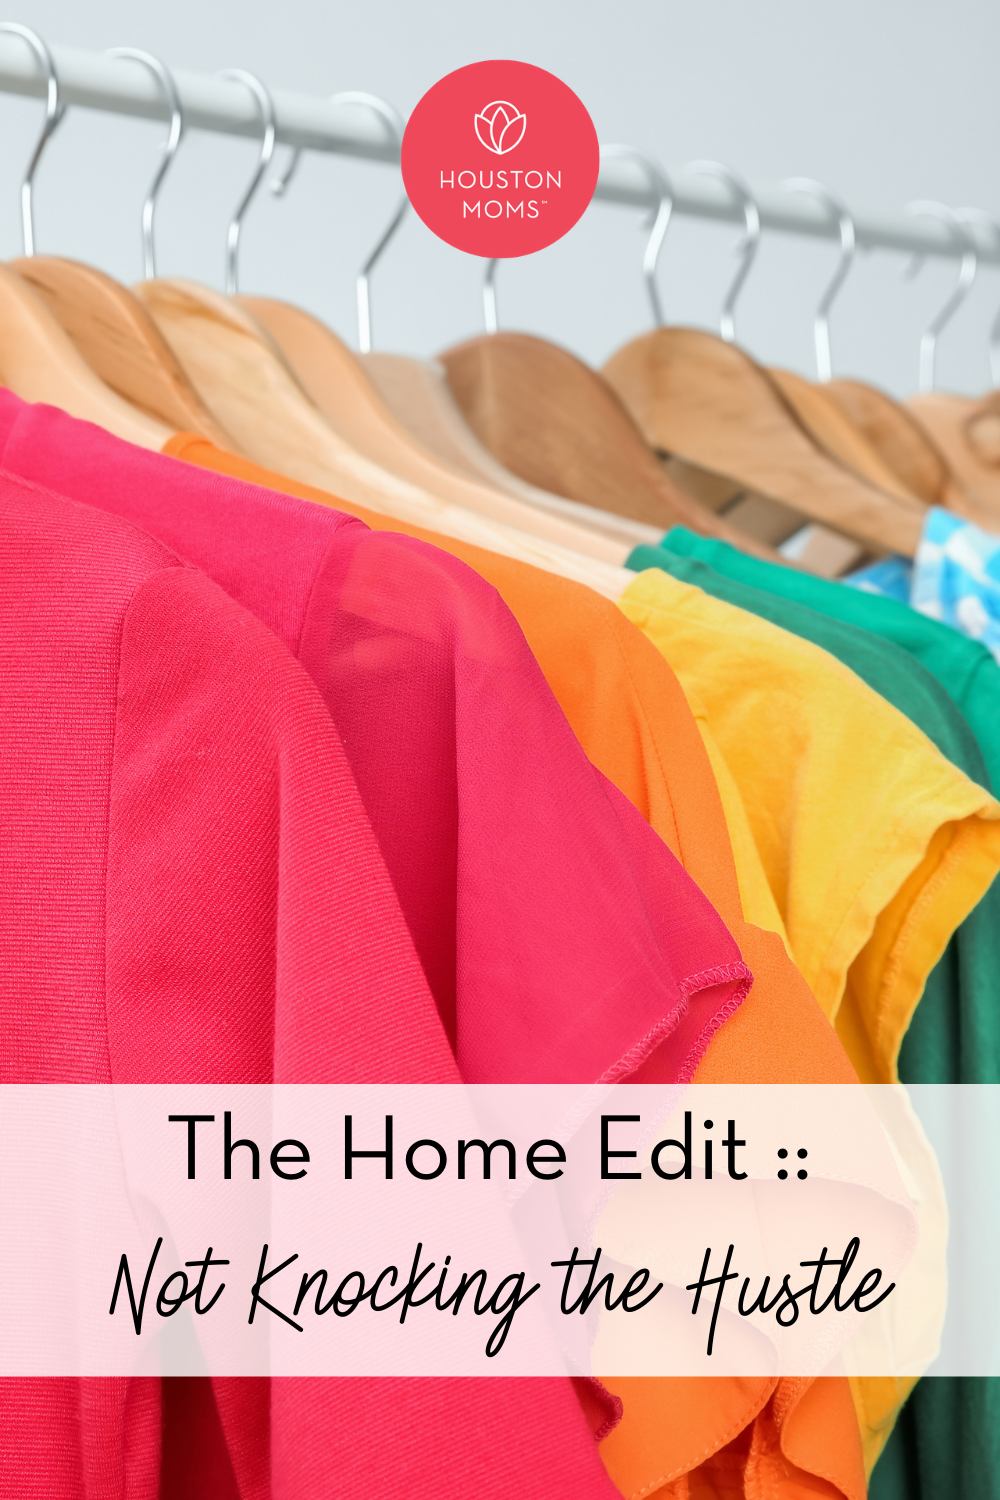 "Houston Moms ""The Home Edit:: Not Knocking the Hustle"" #houstonmoms #houstonmomsblog #momsaroundhouston"